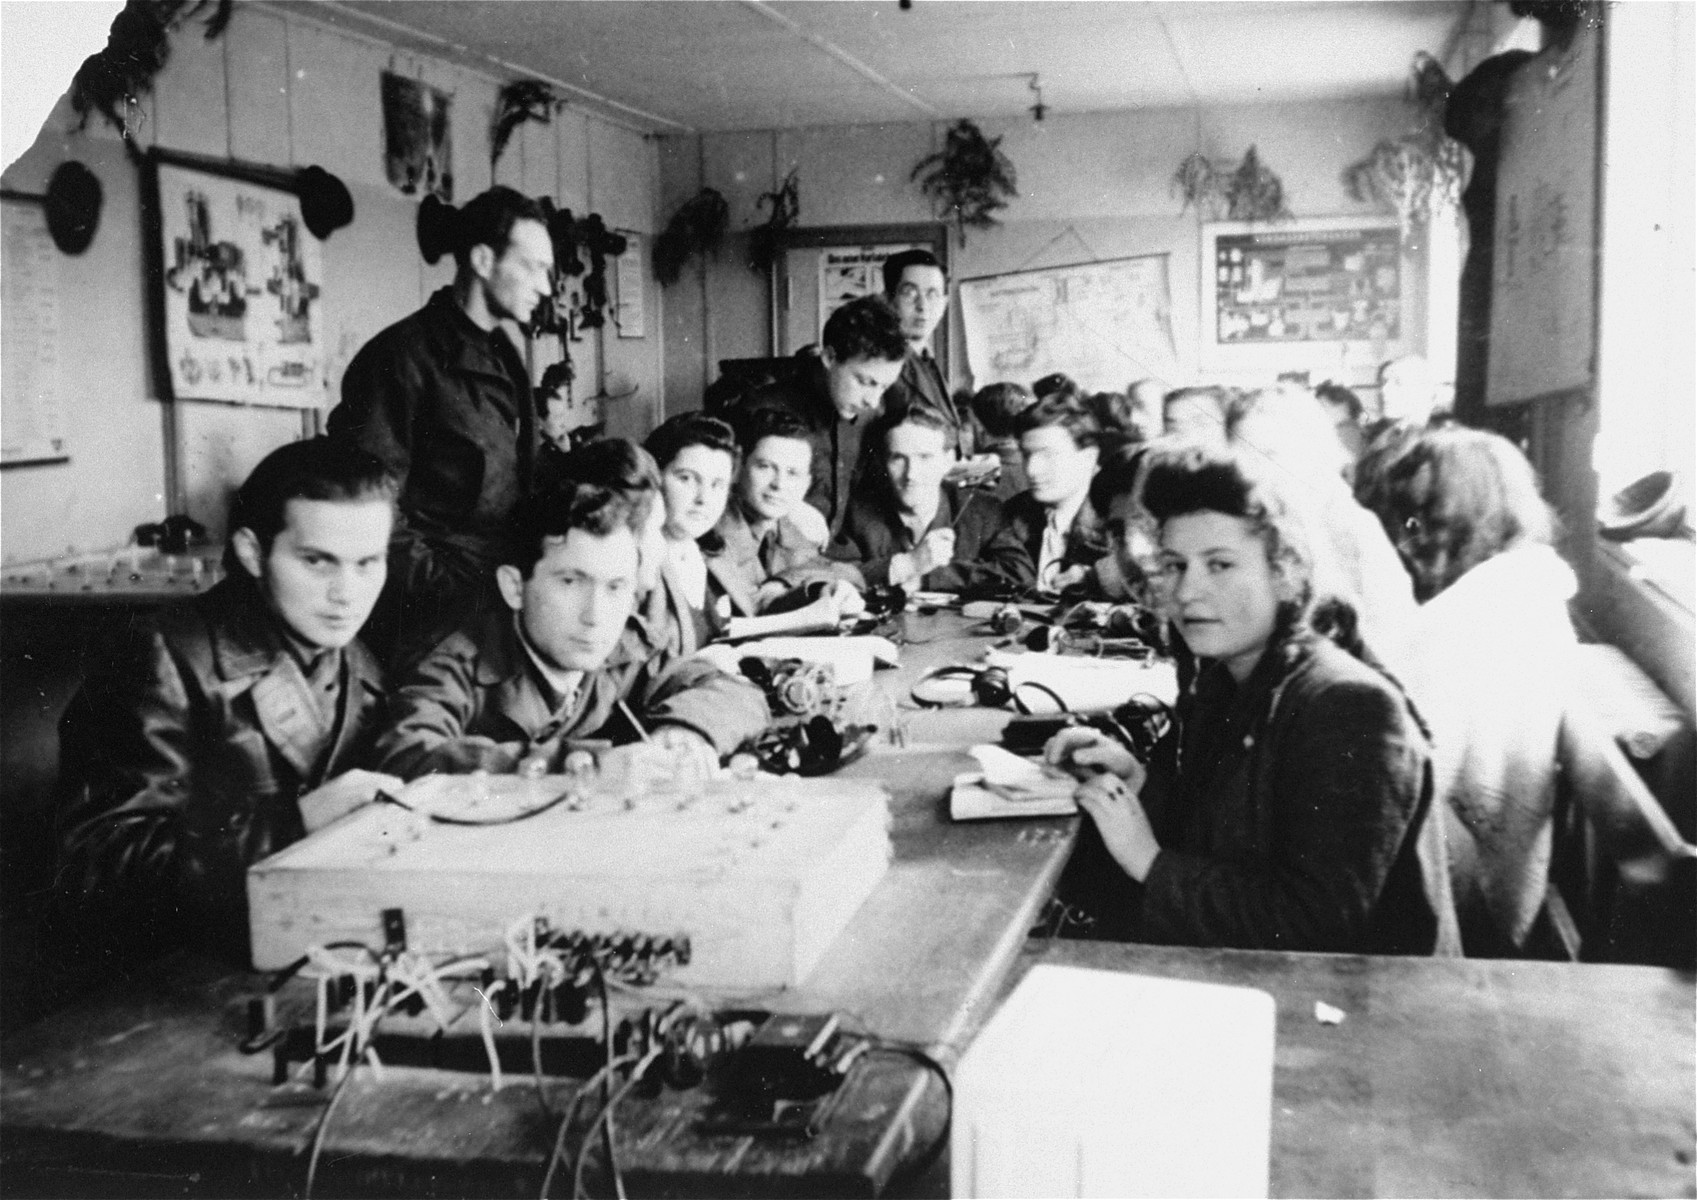 Young men and women attend a  radio telegraph class at the ORT school in the Schlachtensee displaced persons camp.    Students pictured include Murka Bimbad, Lusia Gliklich, George Kupper, Abraham Wasserman, Icka Engelczyn, and ? Zycer.